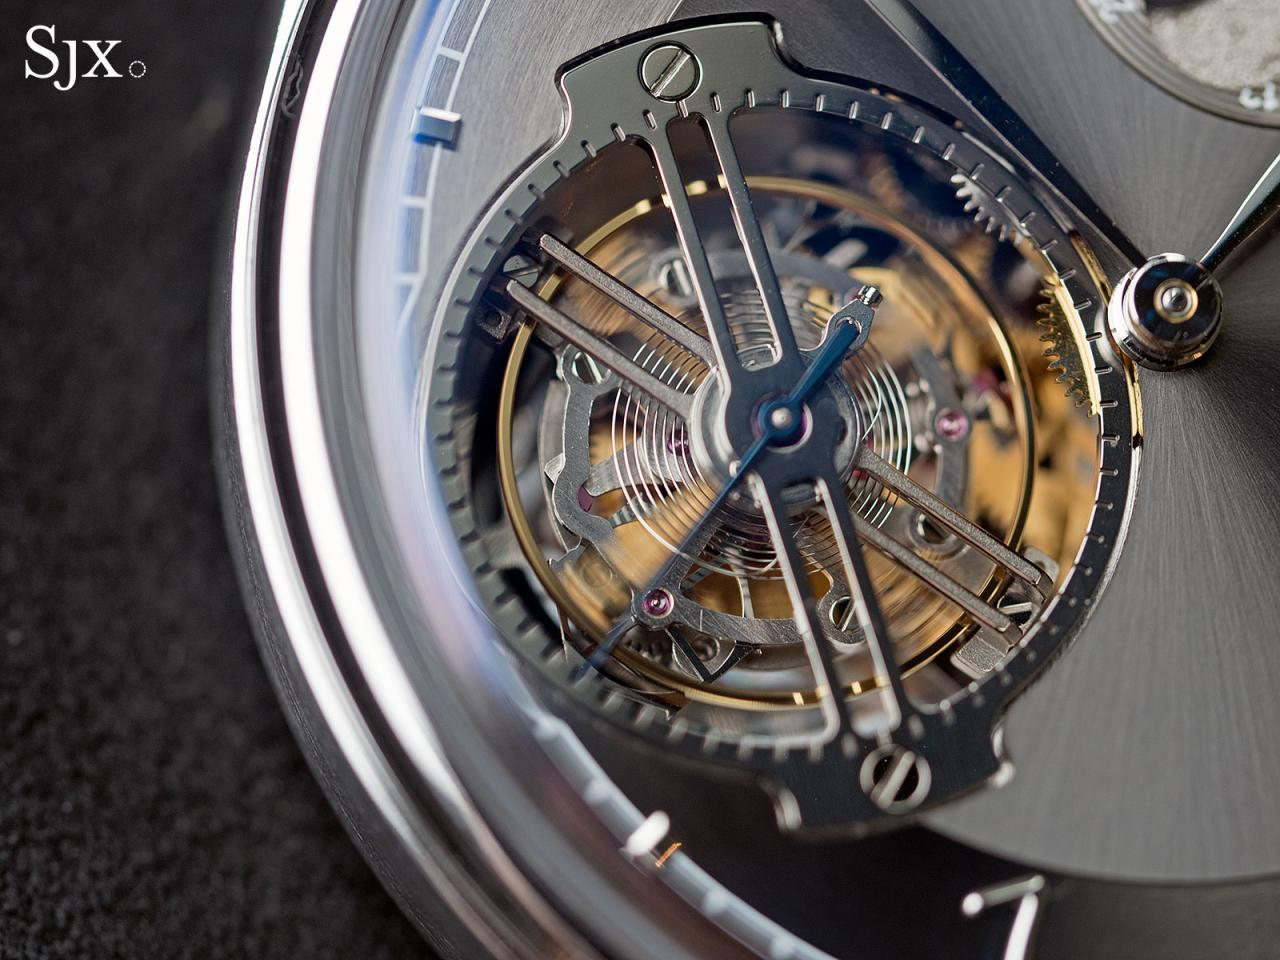 IWC Portugieser Constant-Force Tourbillon 6